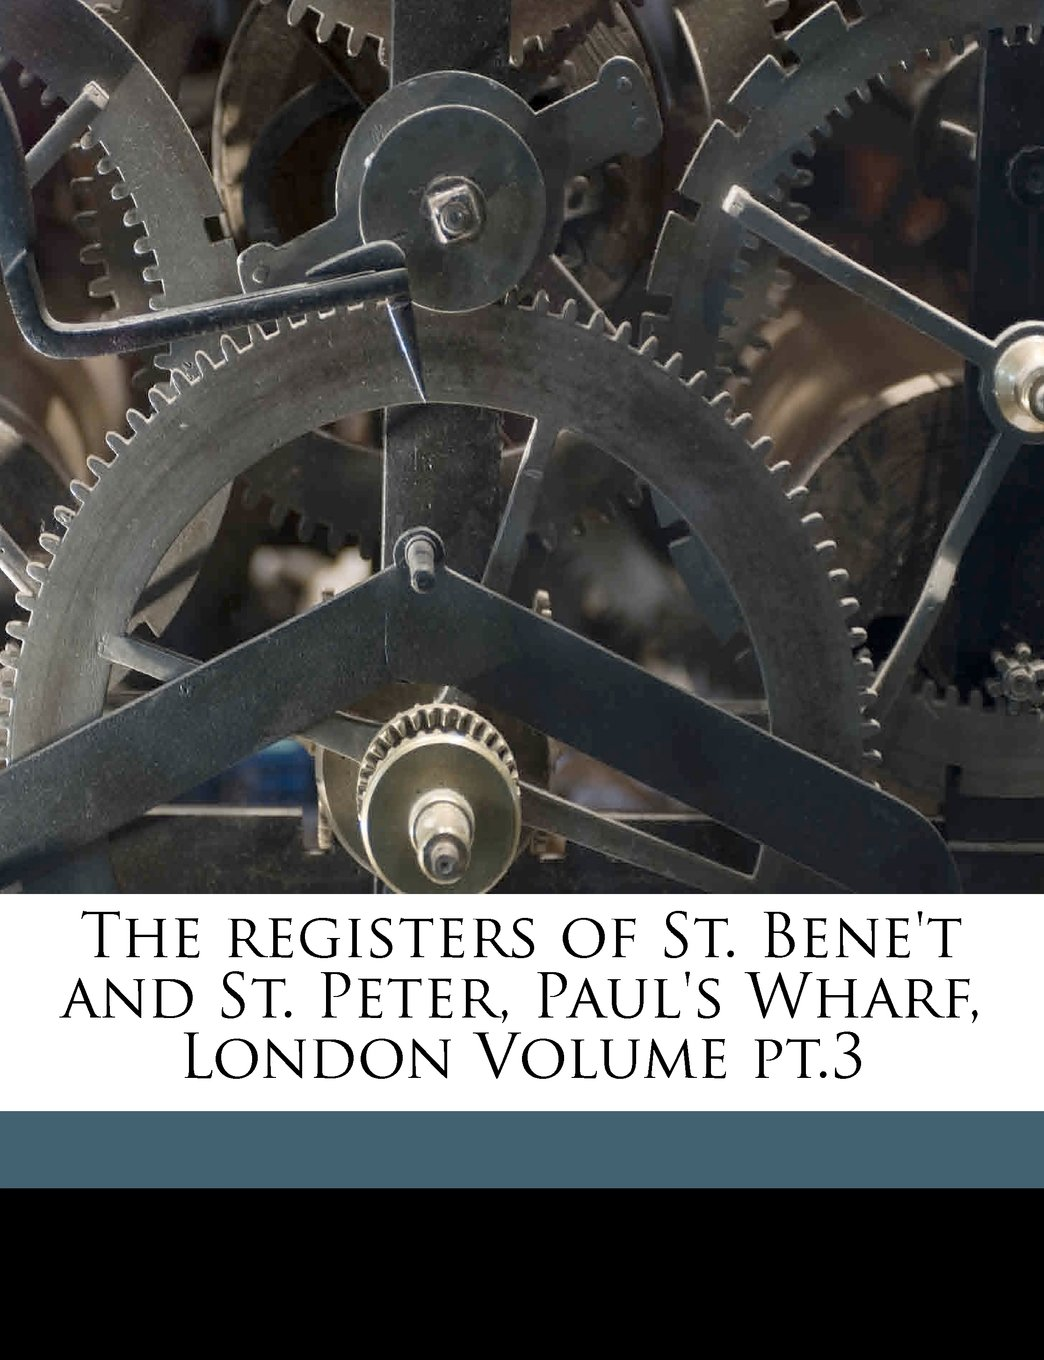 Download The registers of St. Bene't and St. Peter, Paul's Wharf, London Volume pt.3 pdf epub